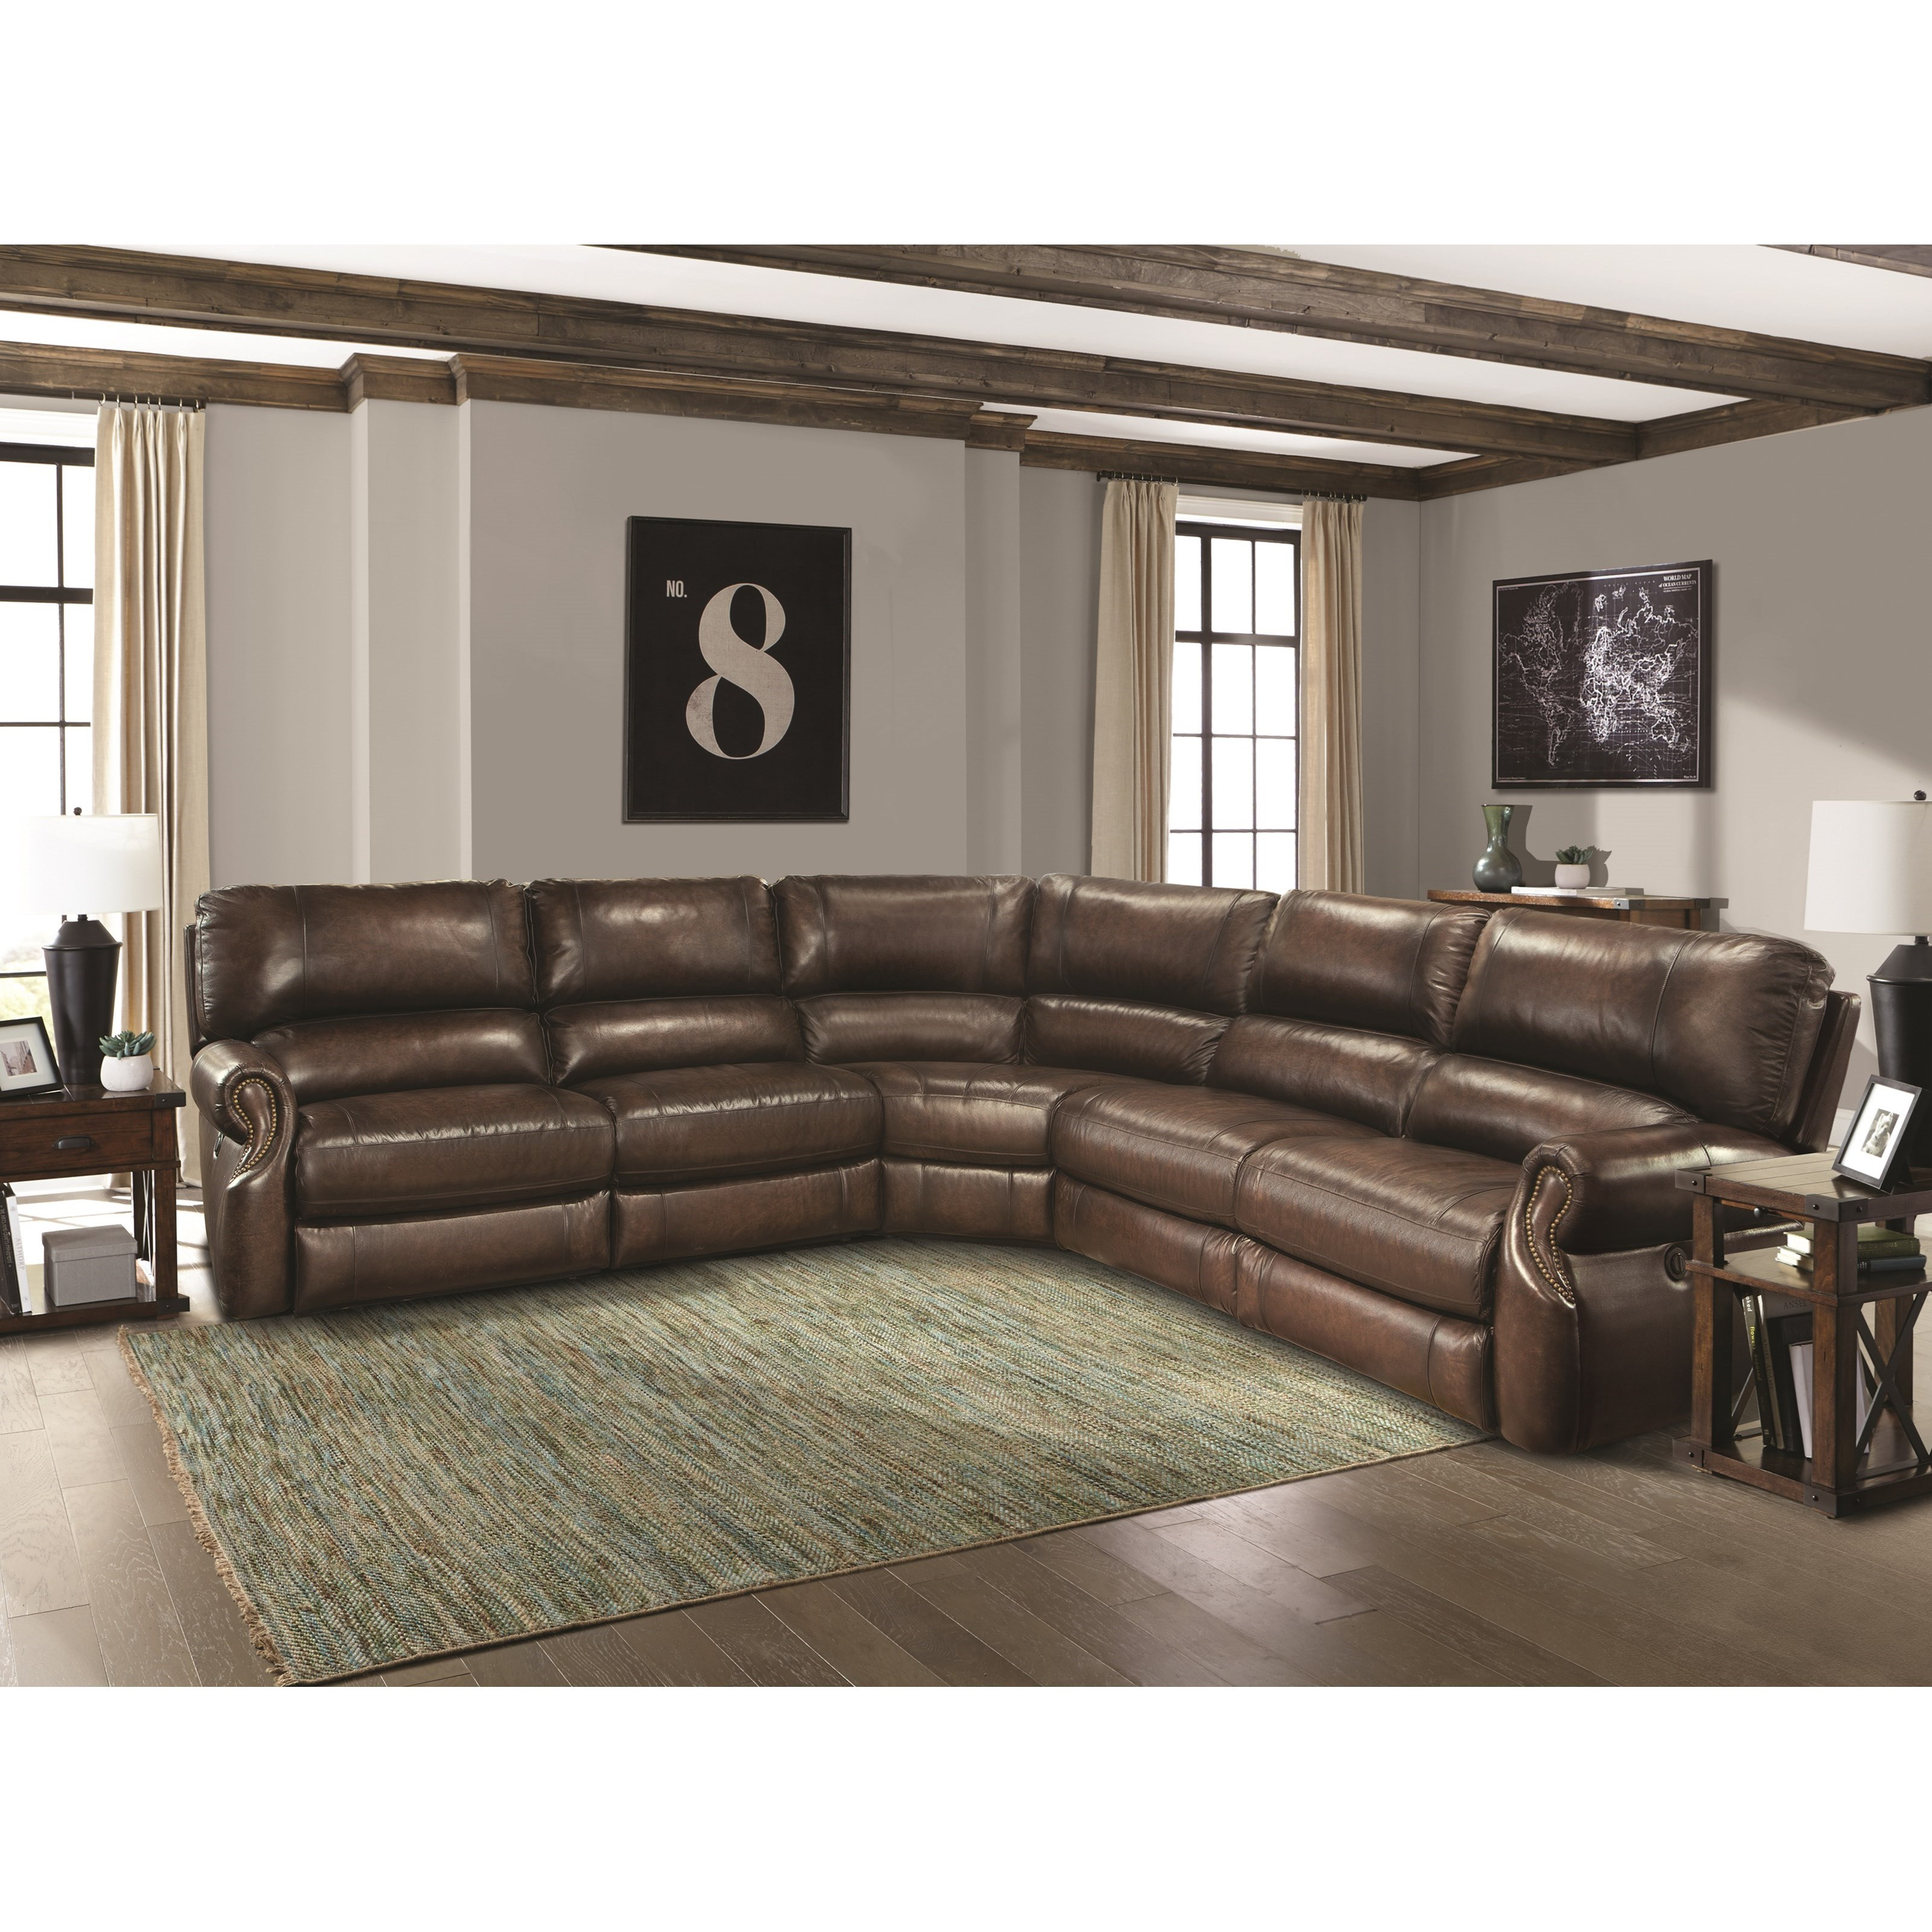 Parker Living Hawthorne Sectional Sofa - Item Number: MHAW-811LP+811RP+2x840+850-BR